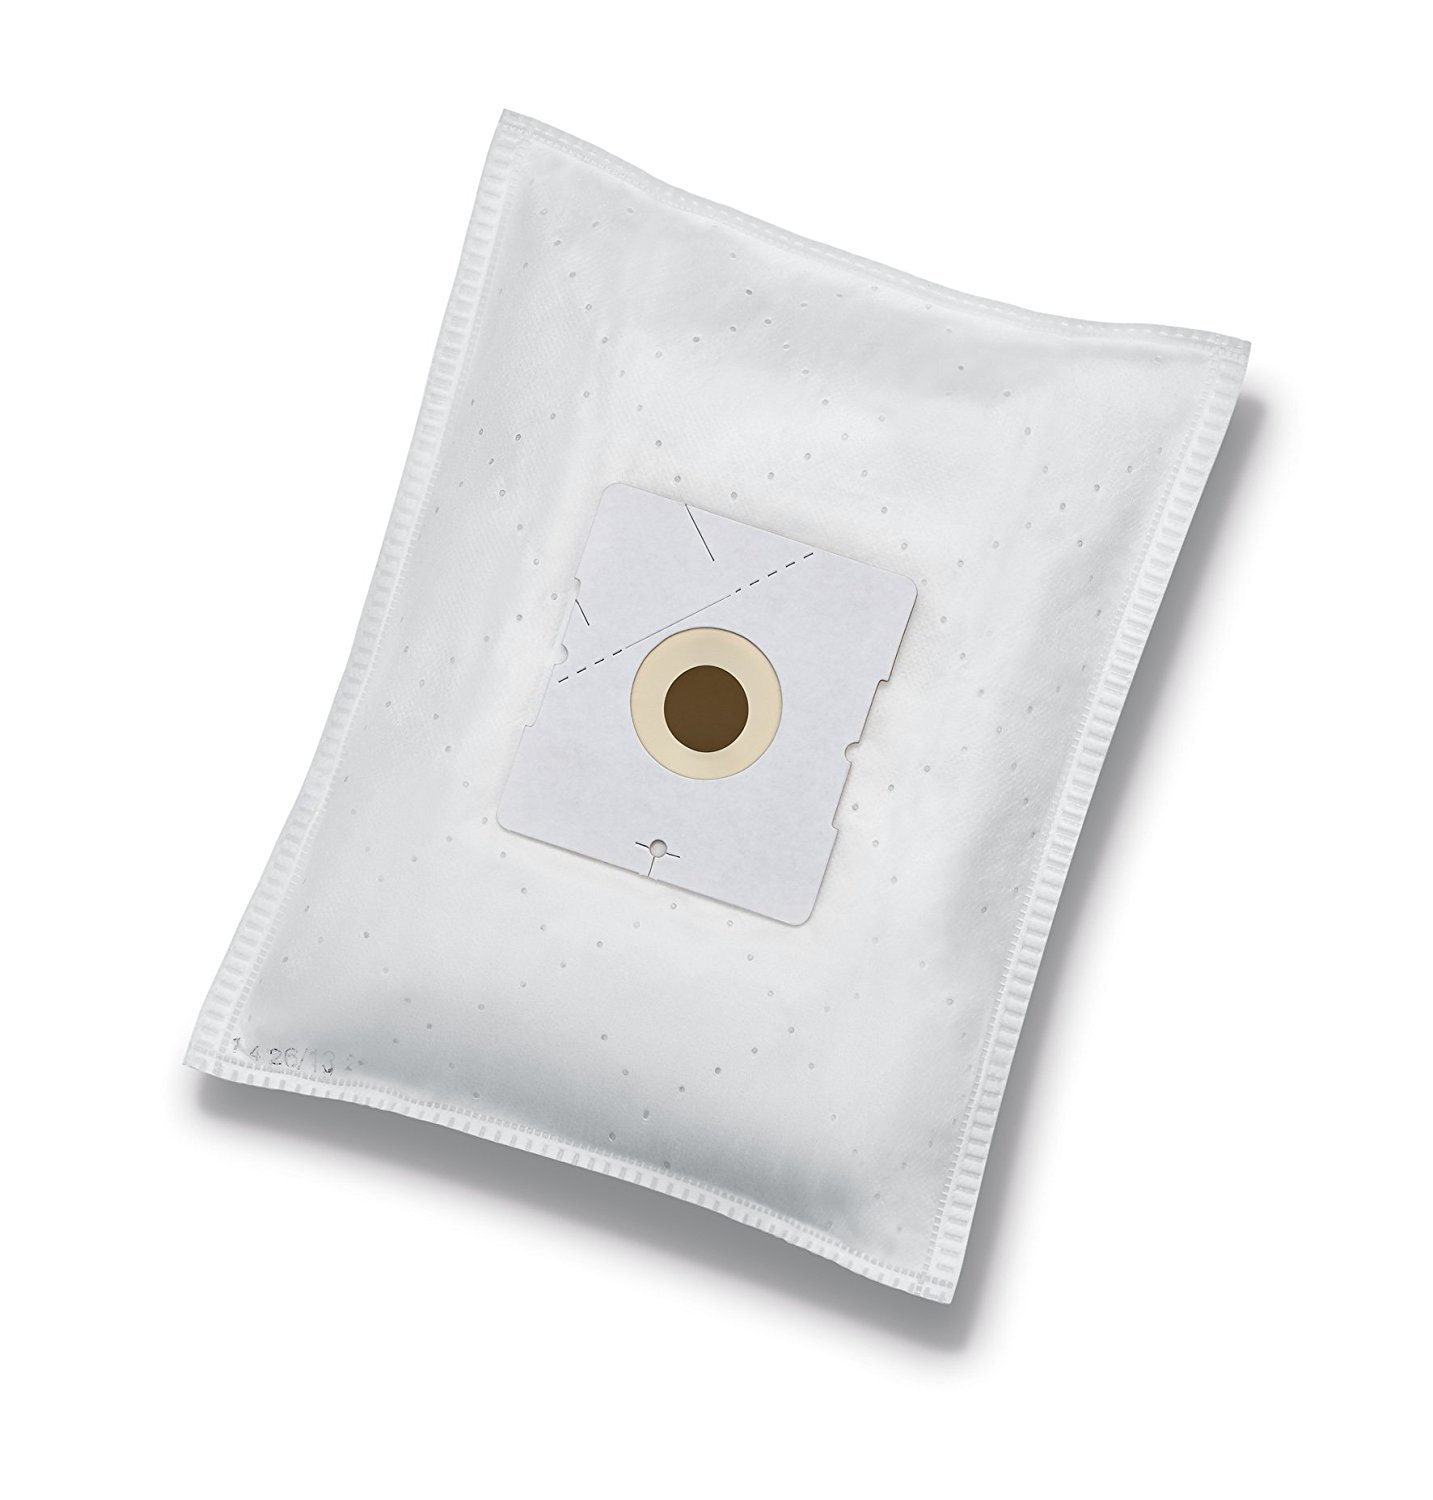 Severin SB 7219 Vacuum Cleaner Replacement Bags and Filter